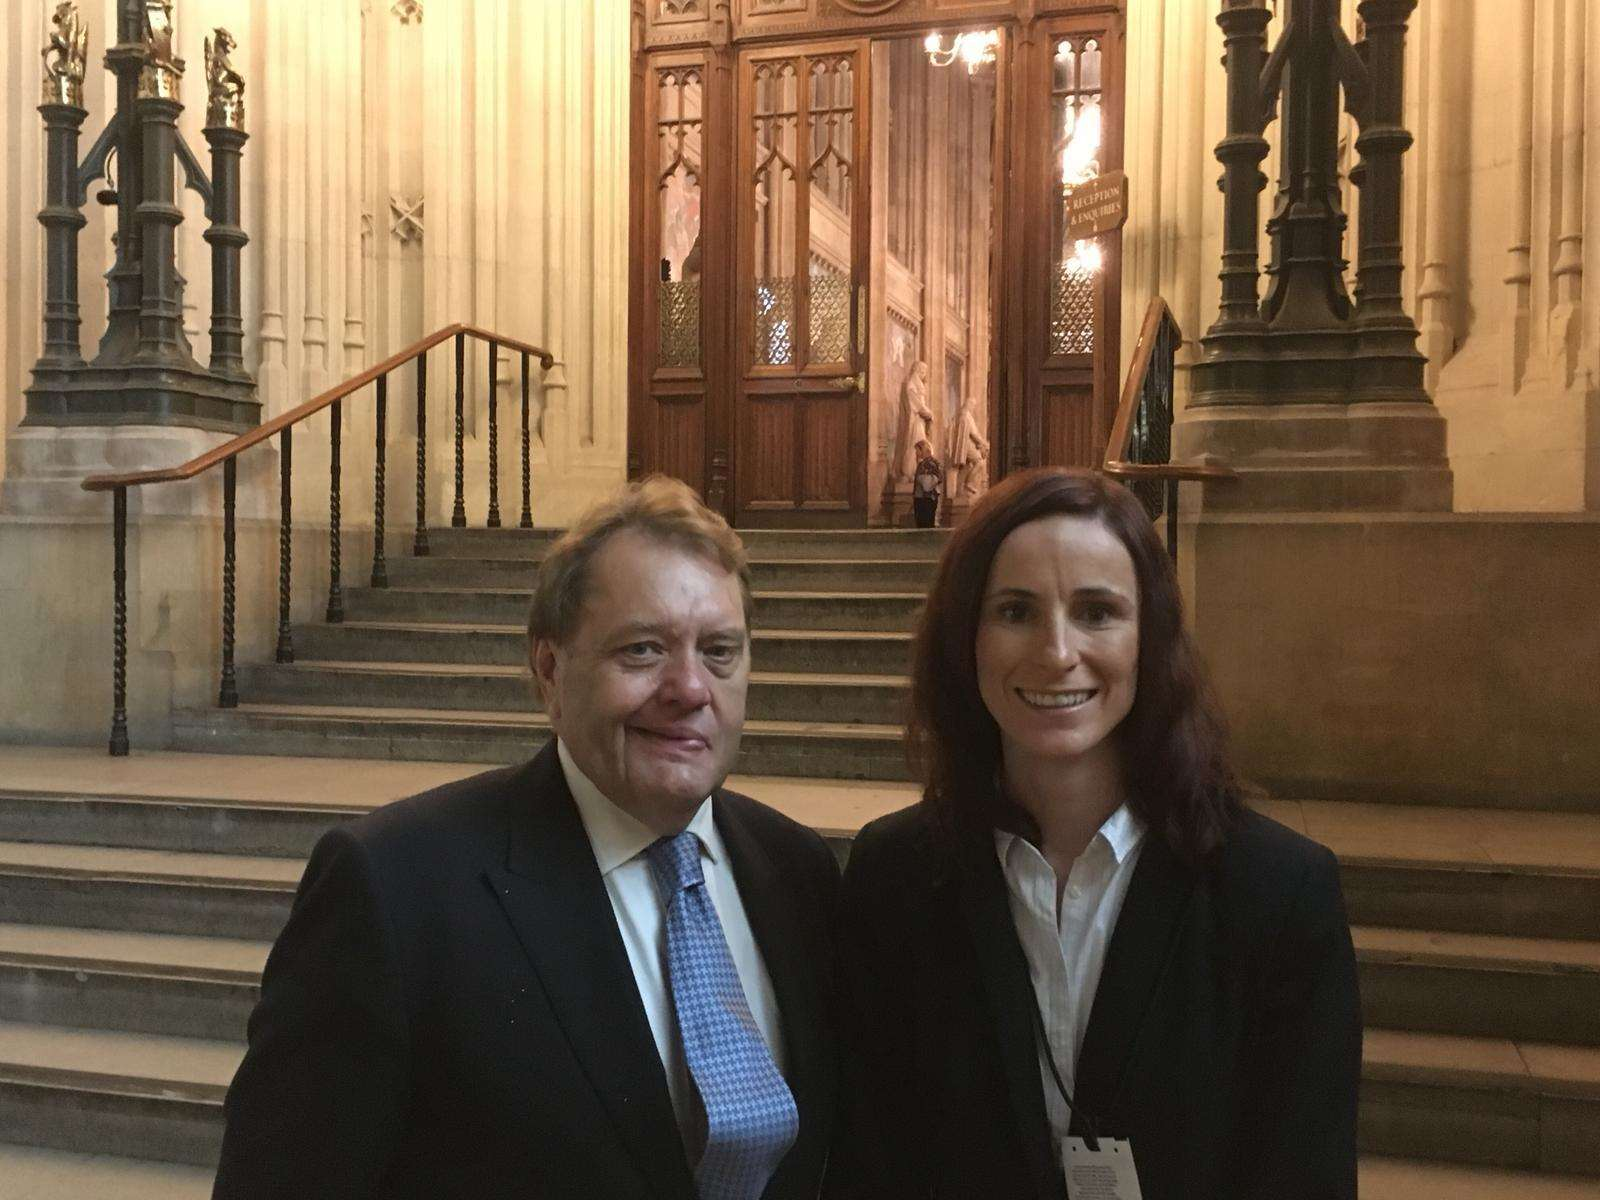 John Hayes, MP for South Holland and the Deepings, with Boston College chief executive and principal Joanne Maher at Westminster during a parliamentary lobby for Colleges Week in October 2018. Photo supplied by Boston College.